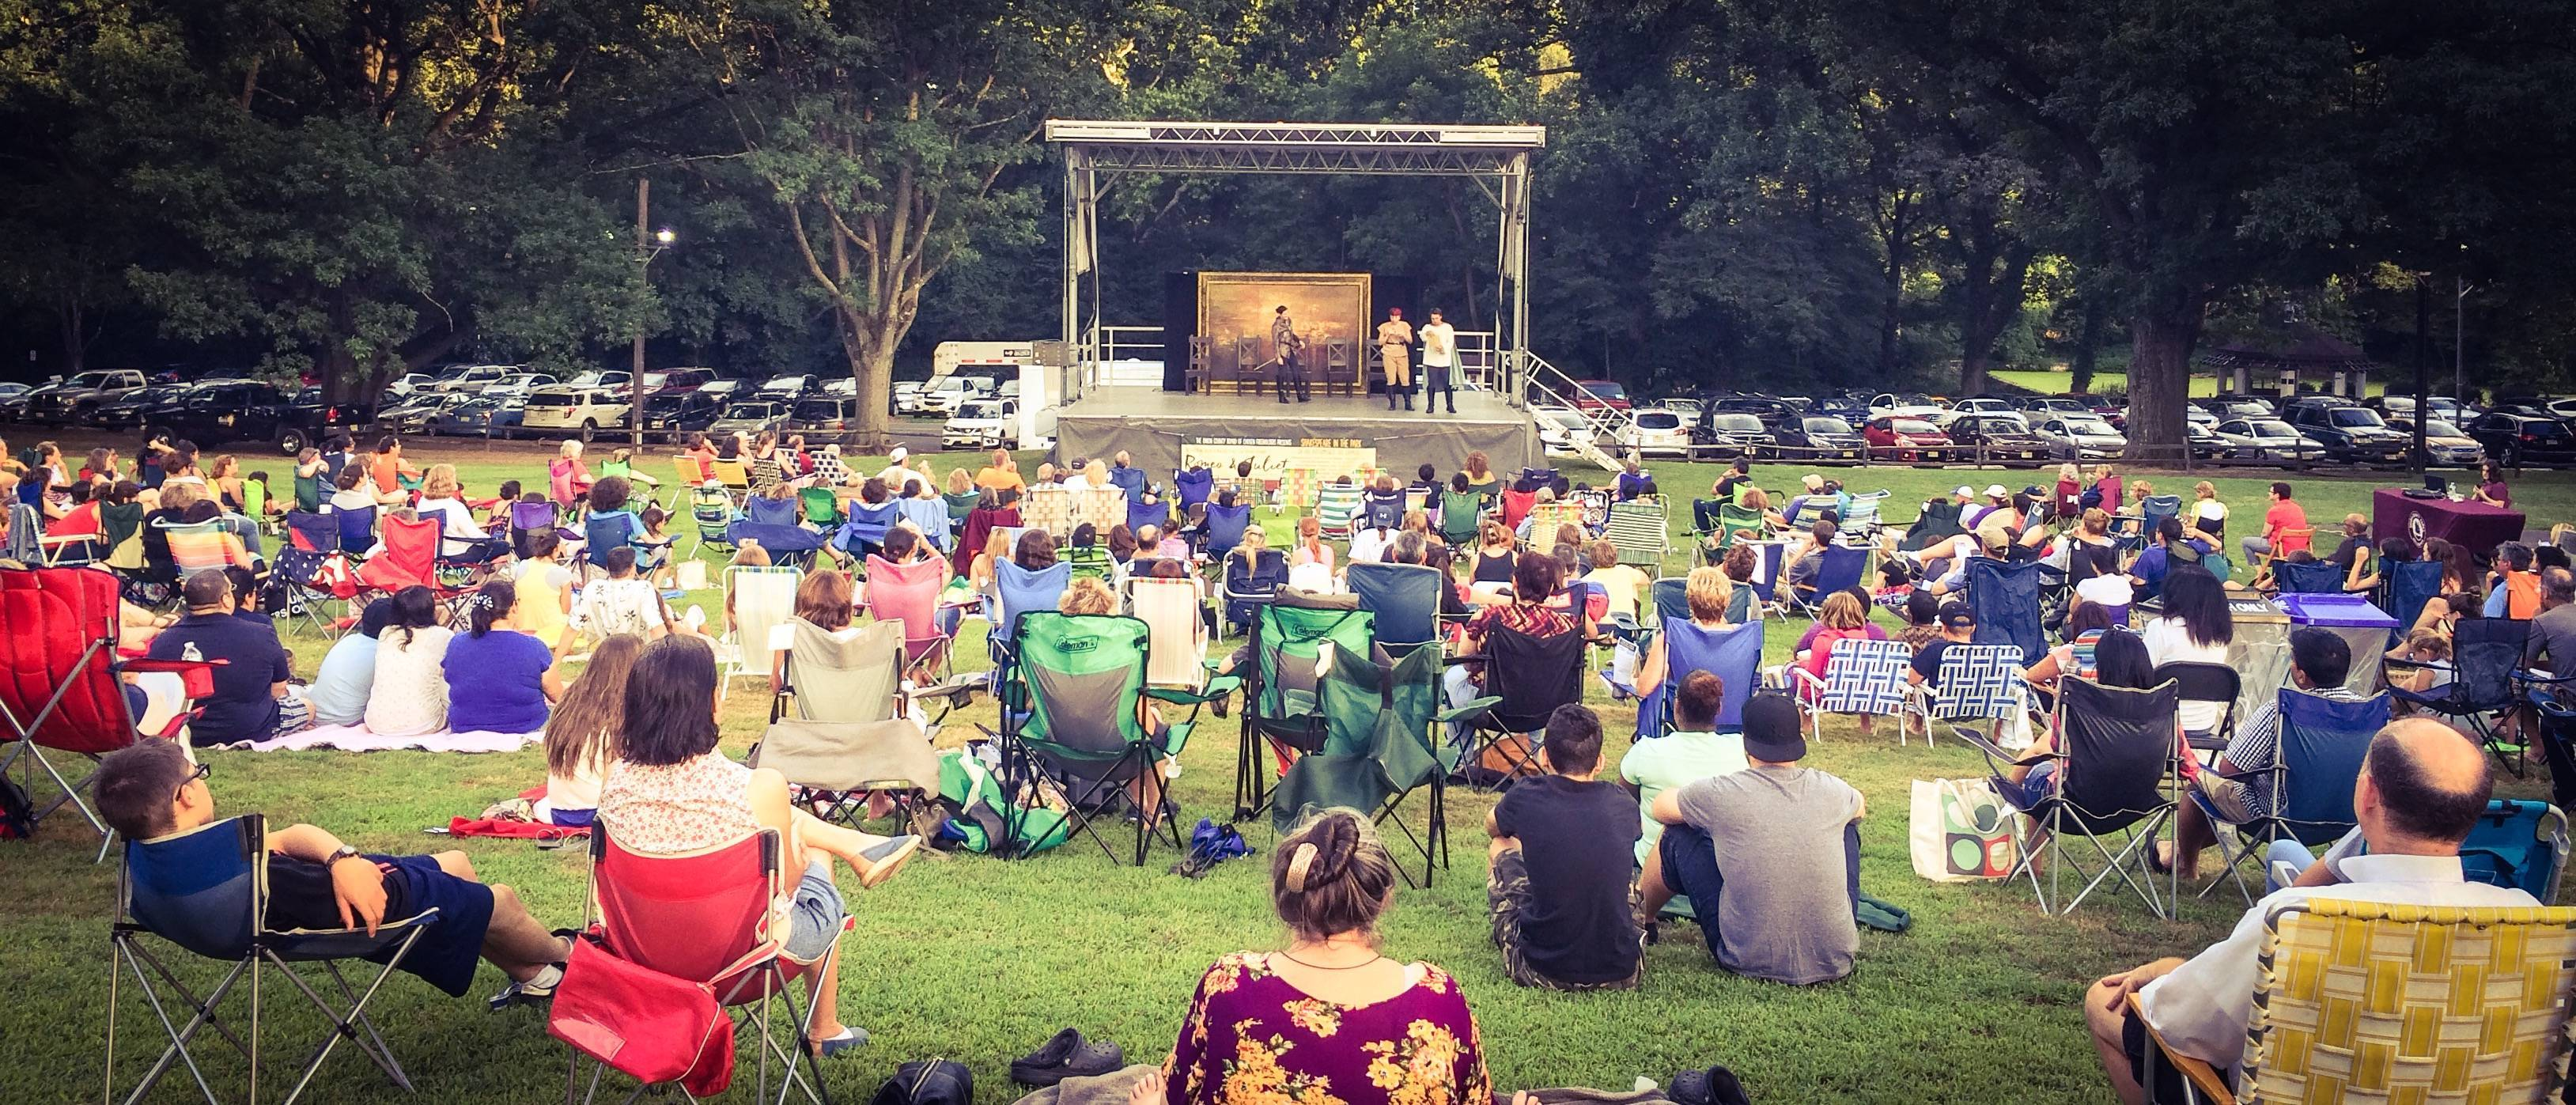 232ab8685171841c49bd_Shakespeare_in_the_Park_2015__NSE_performing_Romeo_and_Juliet.jpg